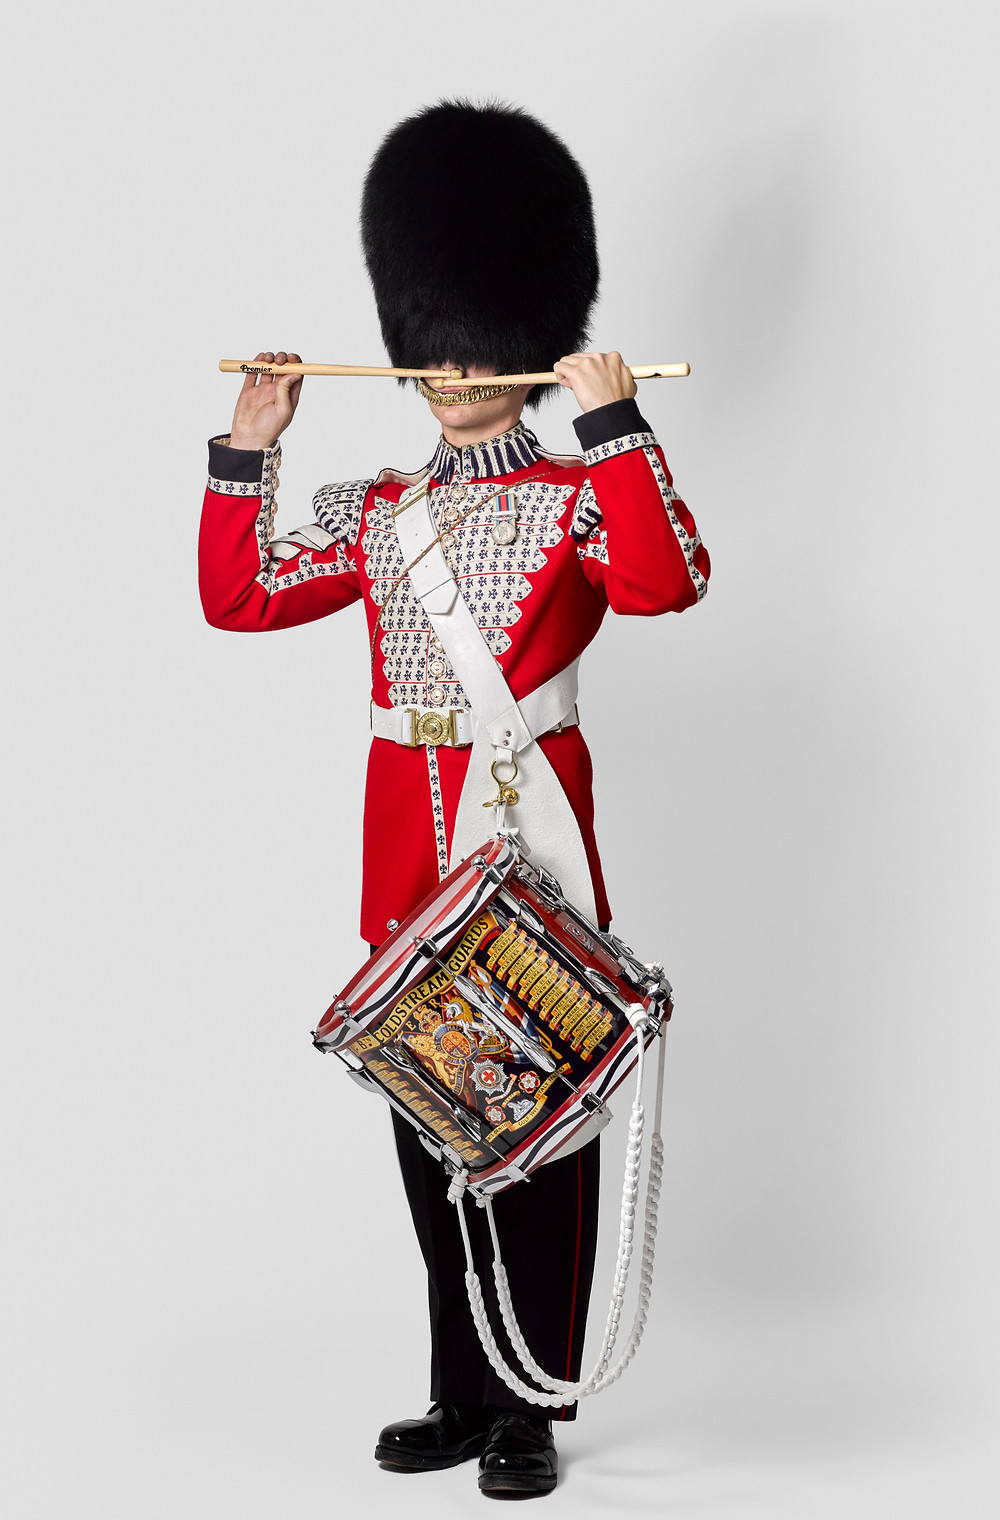 Coldstream Guards Bandsmen, photography by Rory Lewis